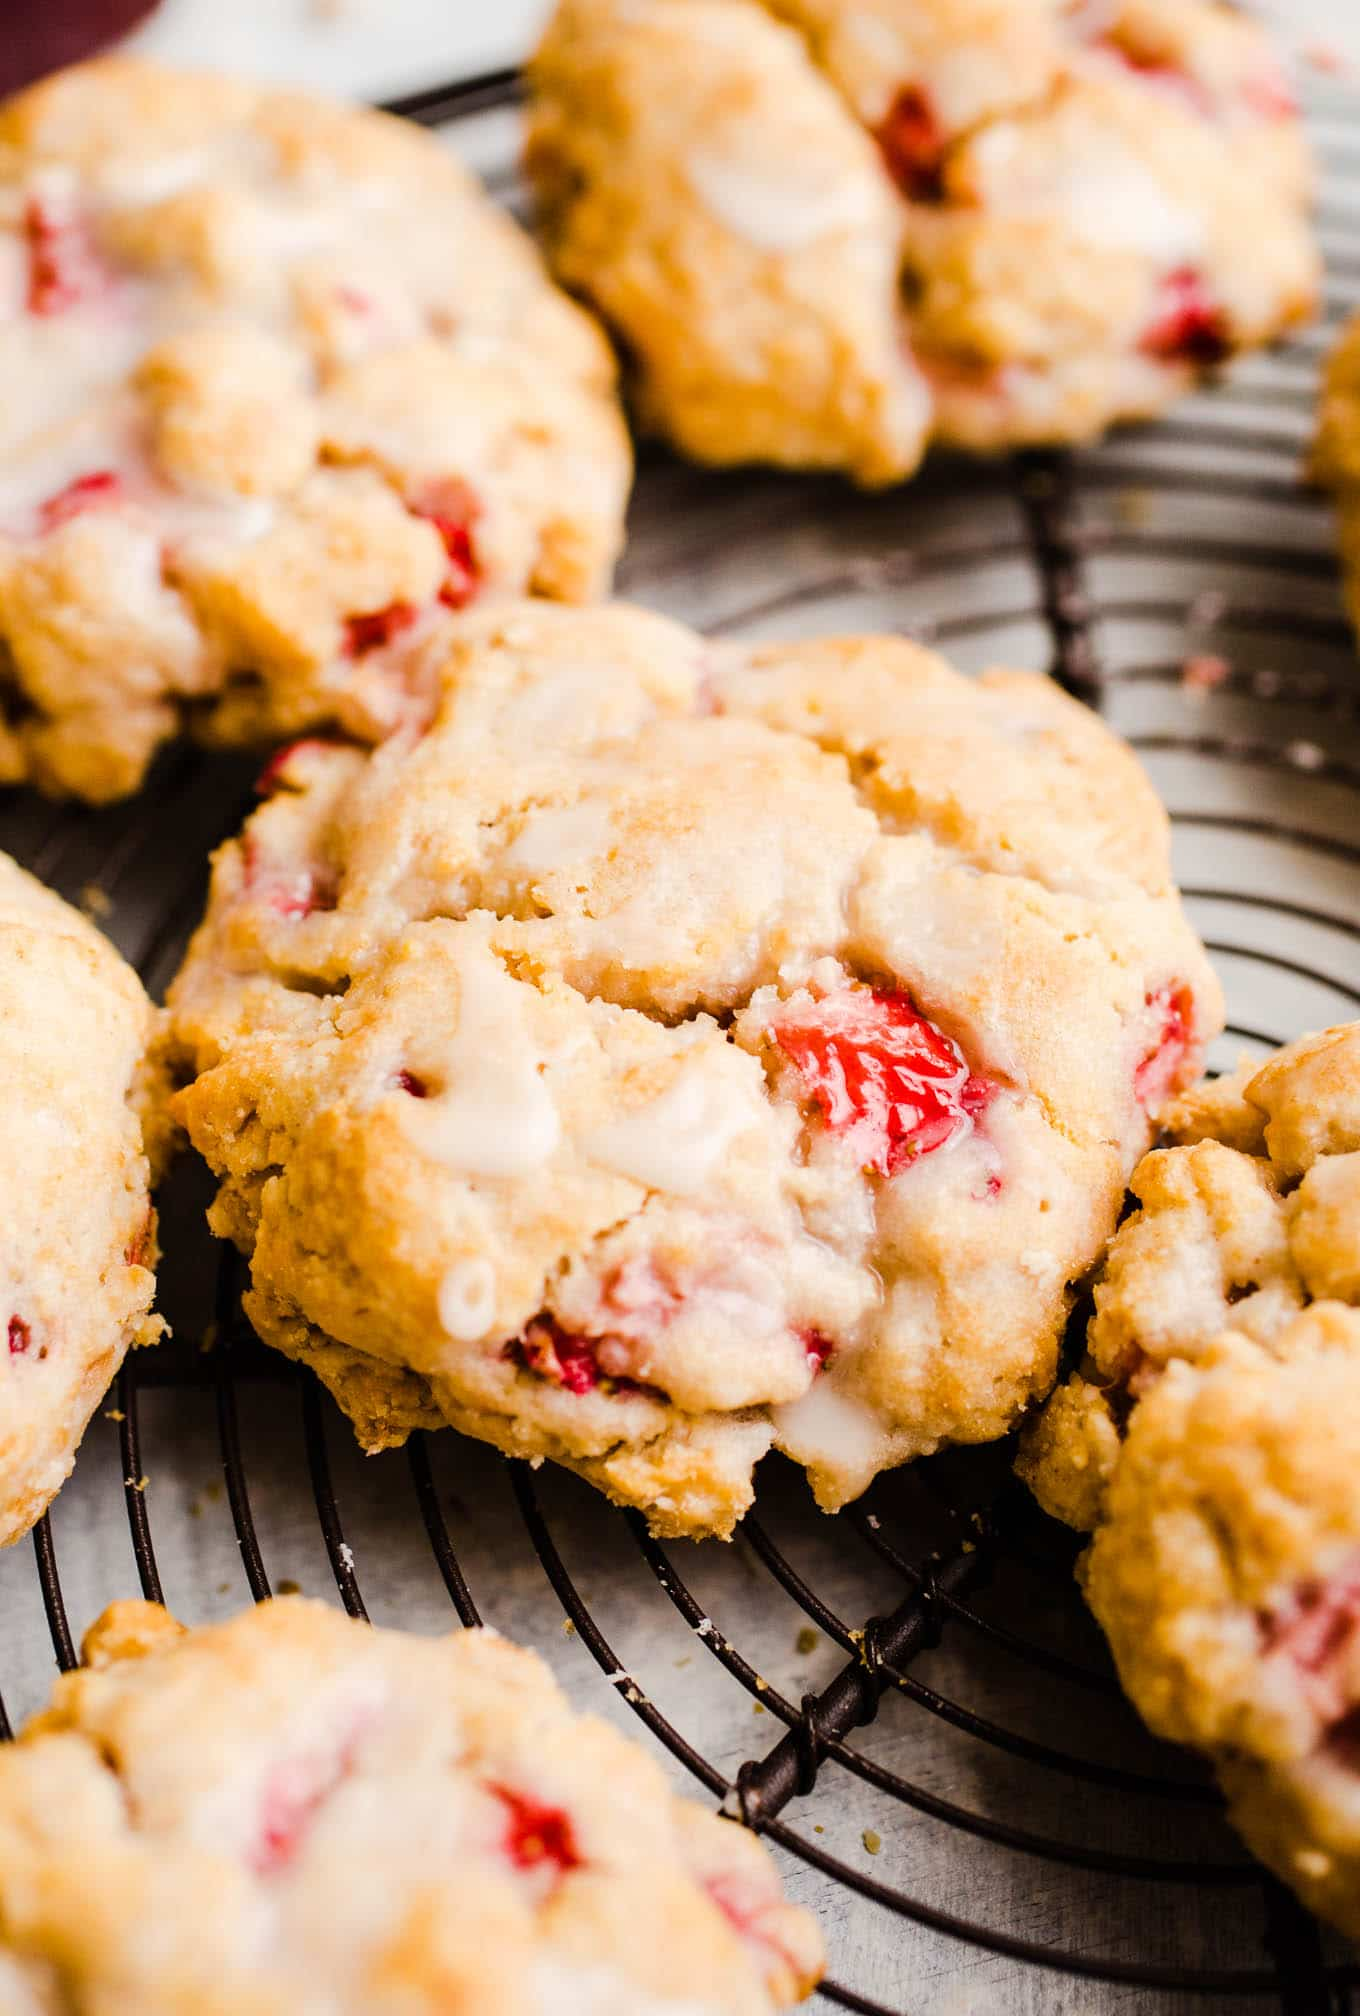 biscuits with strawberries